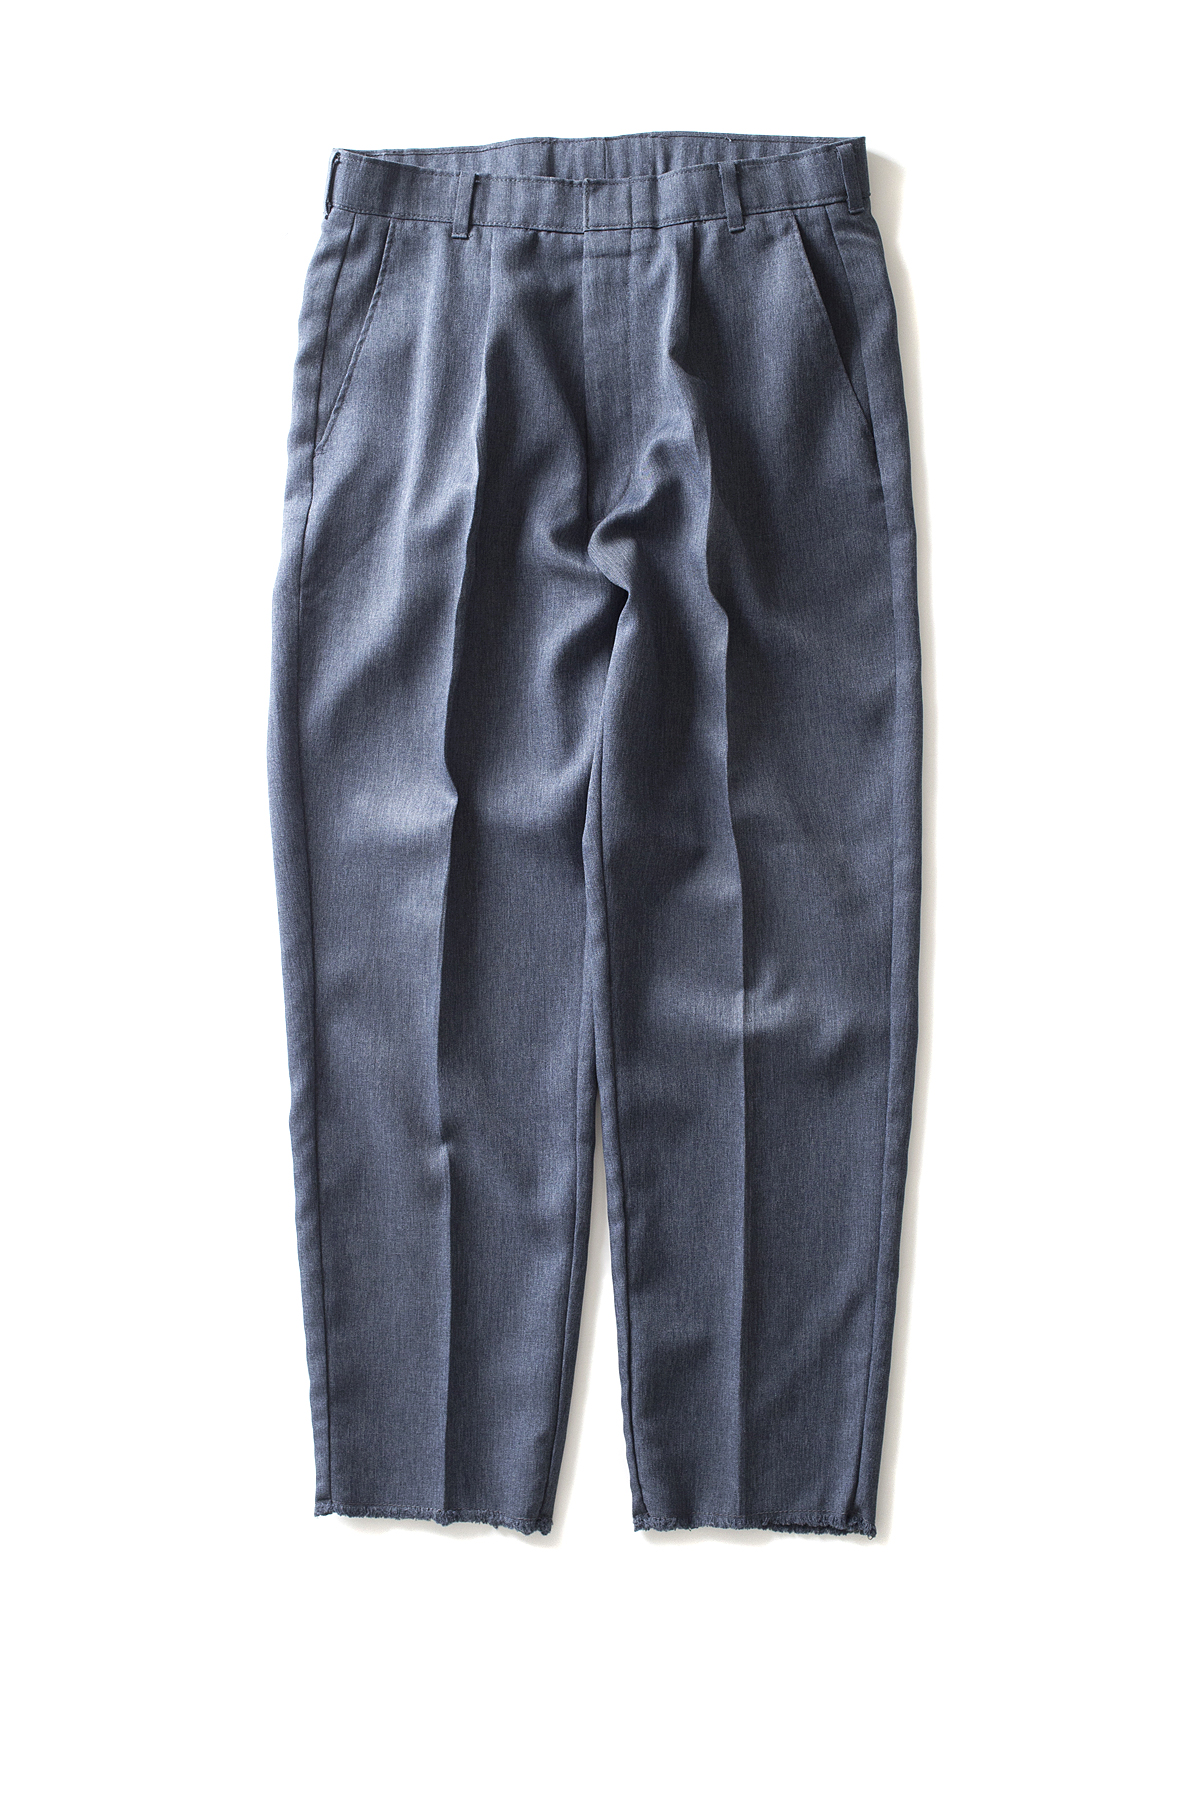 HEXICO : Deformer Ex. Action Slacks 1-Tuck Trousers (Blue)